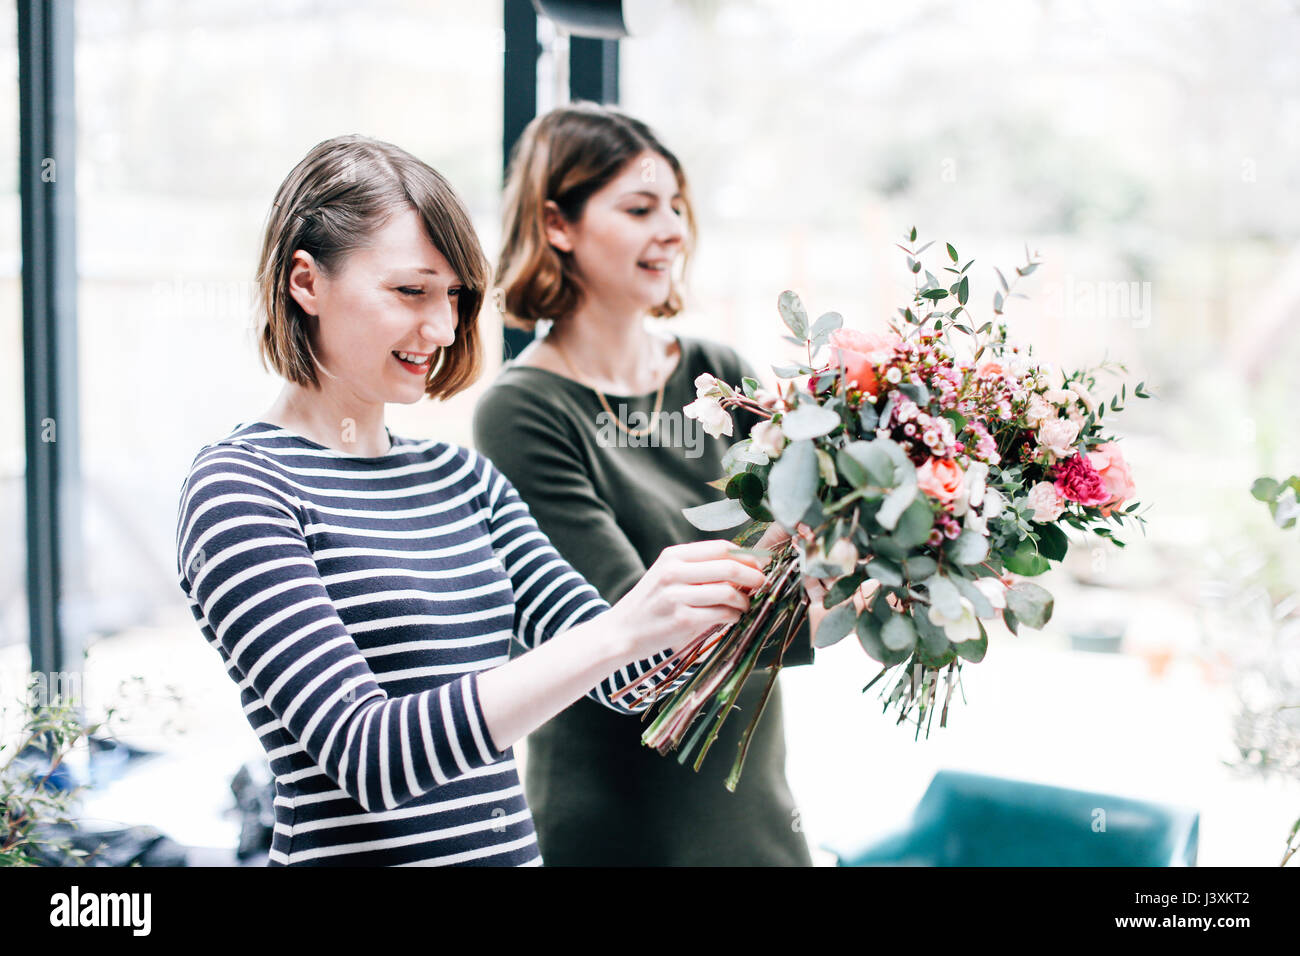 Florist students arranging bouquets at flower arranging workshop - Stock Image